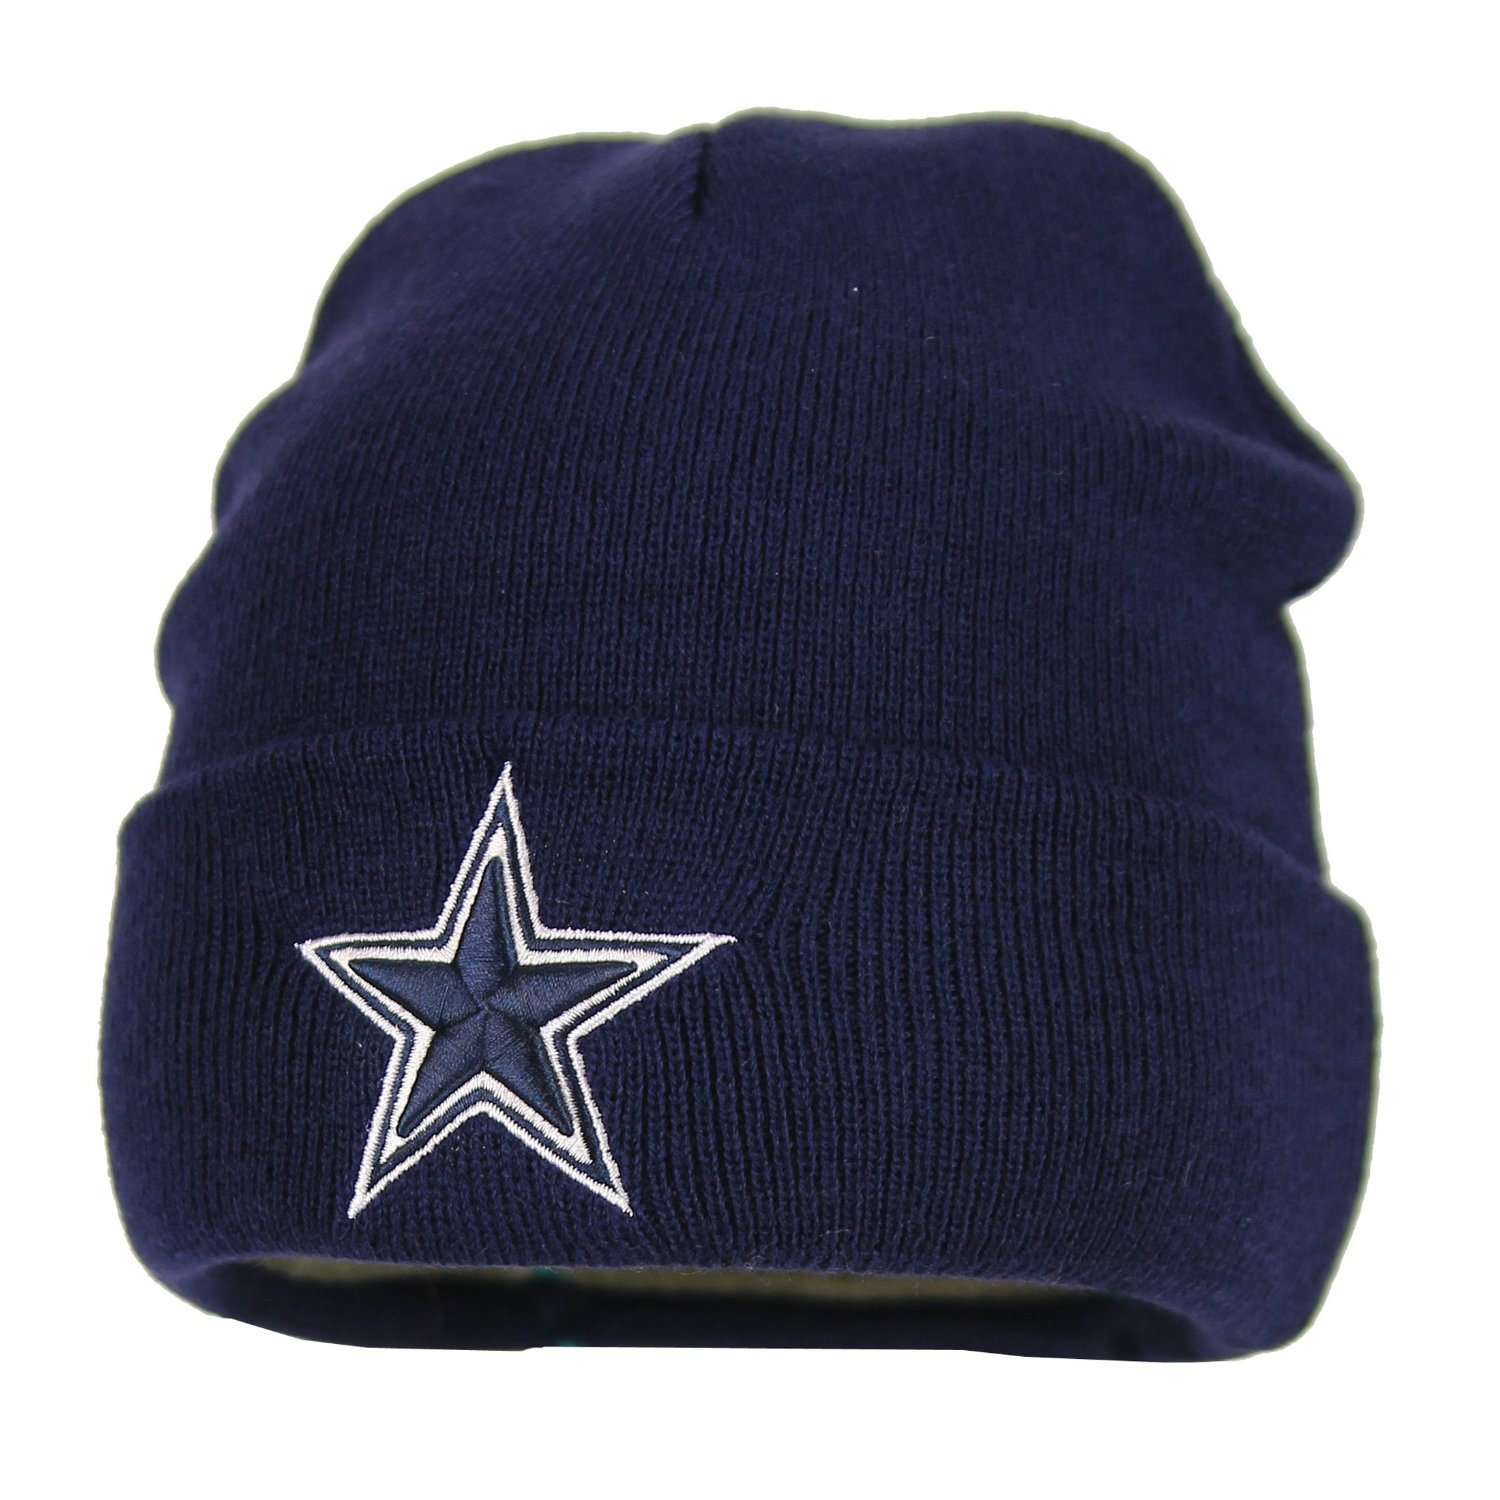 73135fe82e79a Get Quotations · Dallas Cowboys Basic Knit Hat (Navy)